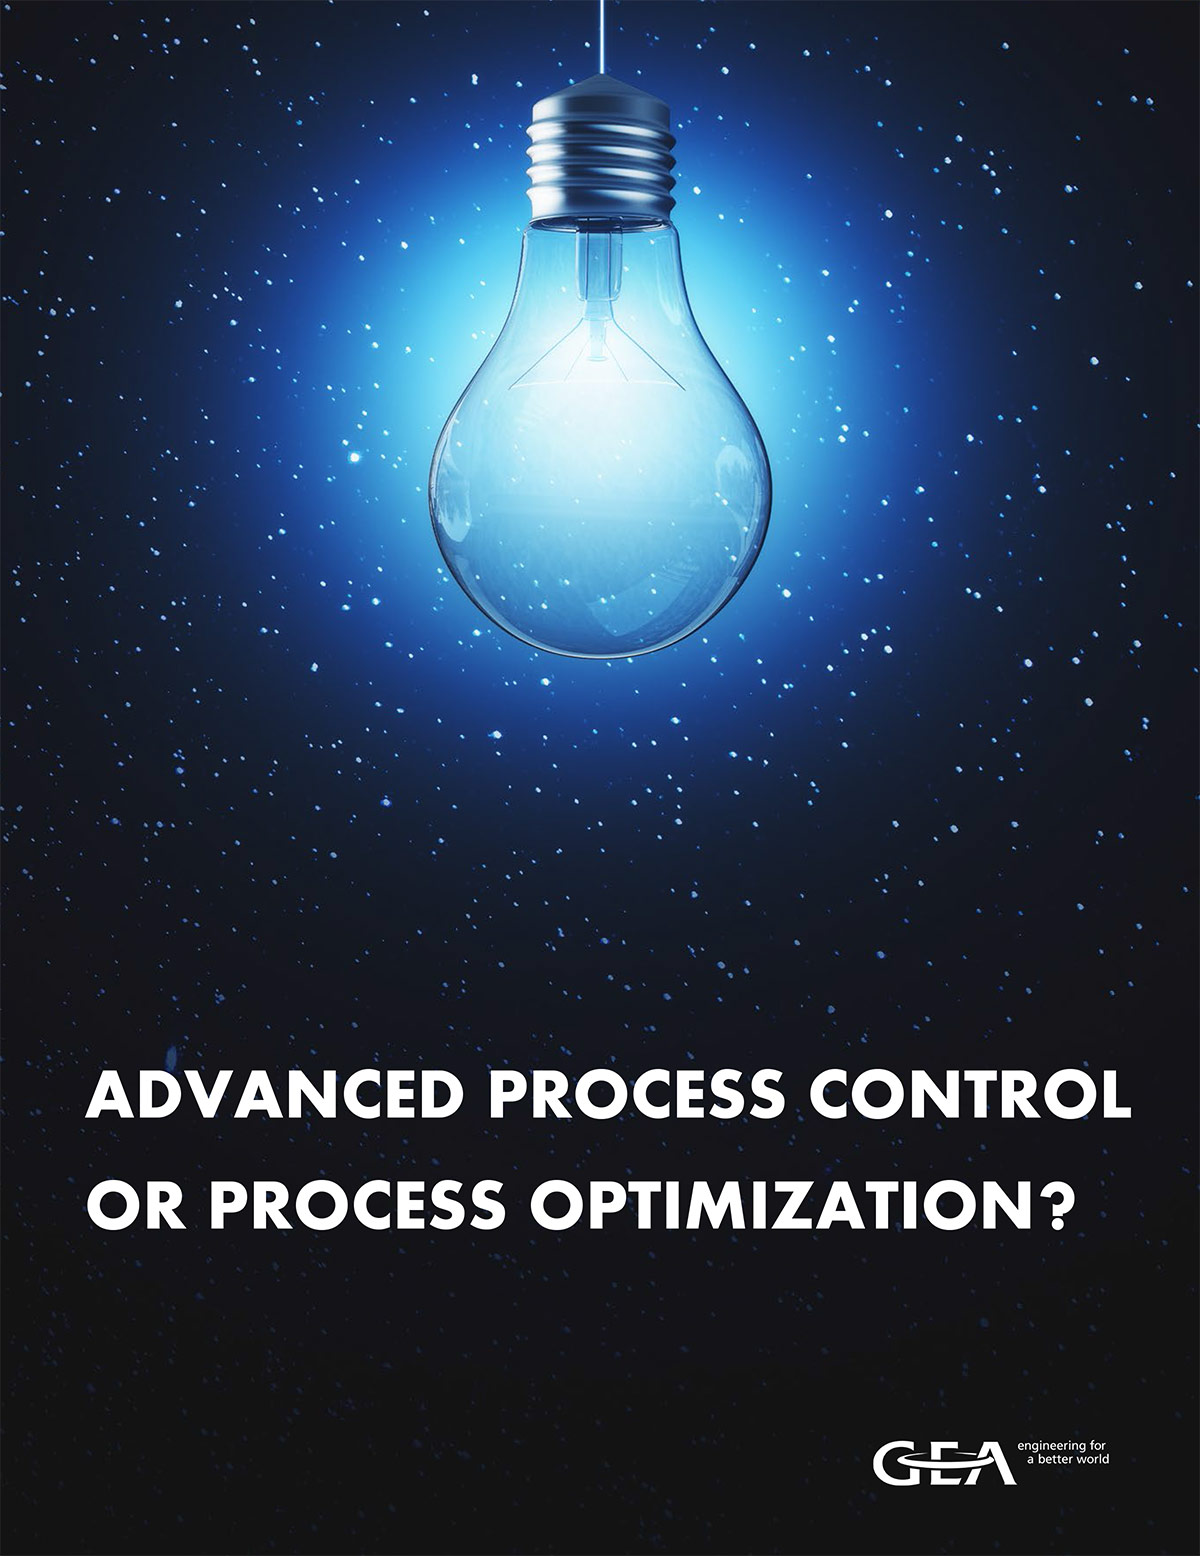 Advanced process control or process optimization